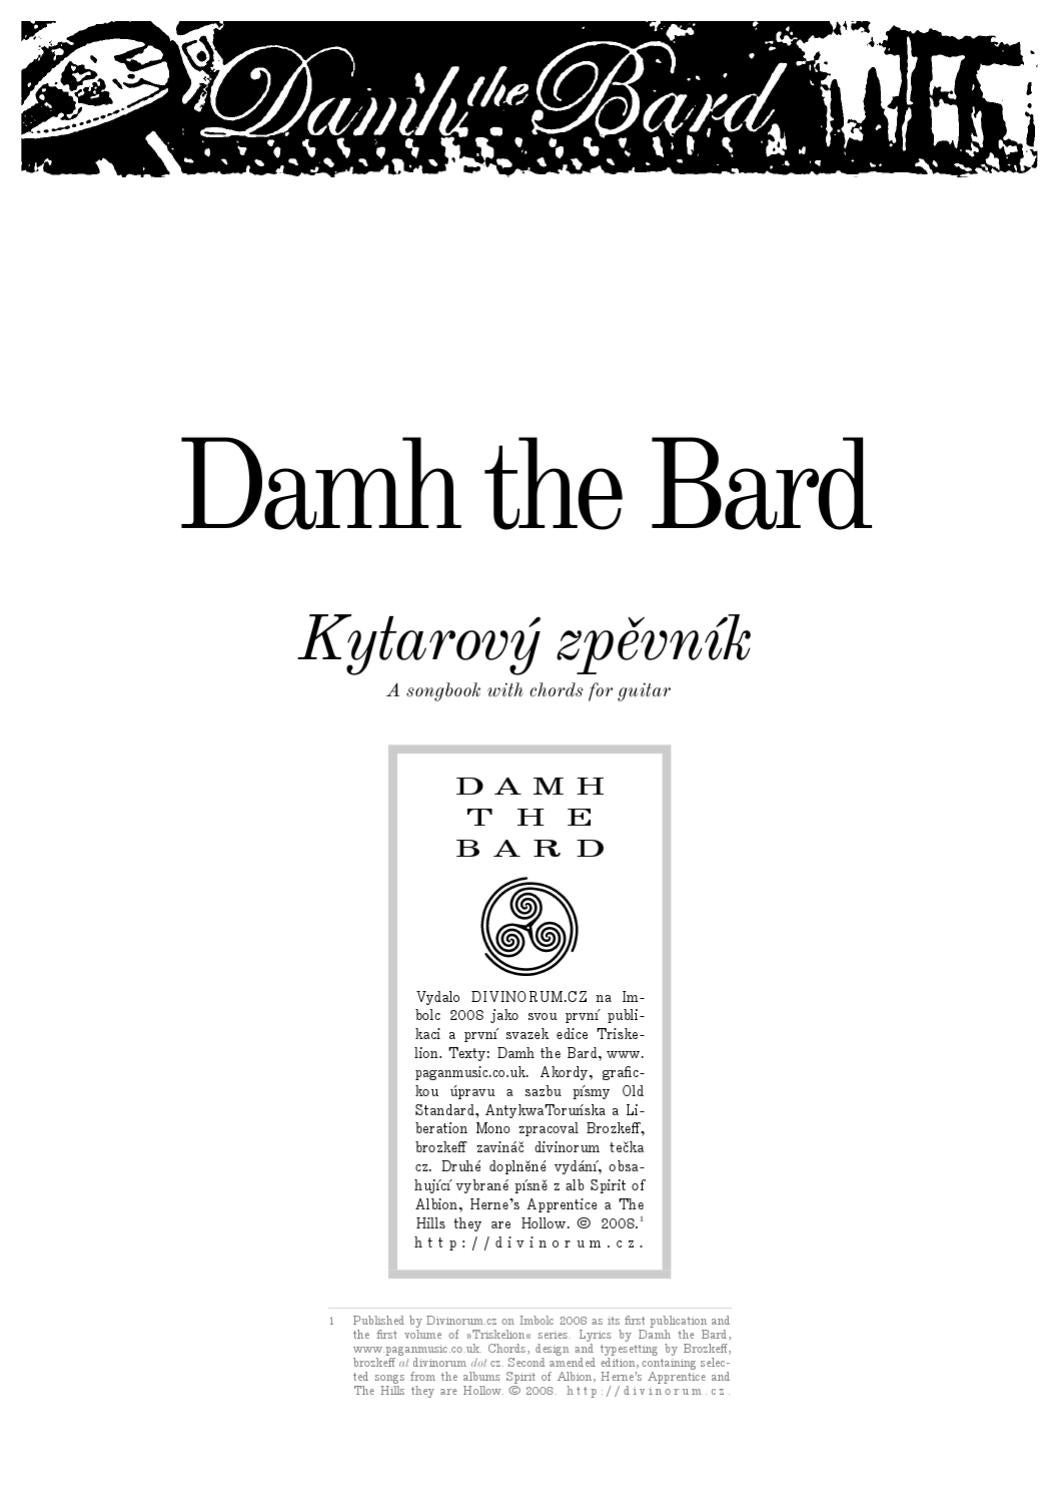 Damh the bard songbook by martin malec issuu hexwebz Images